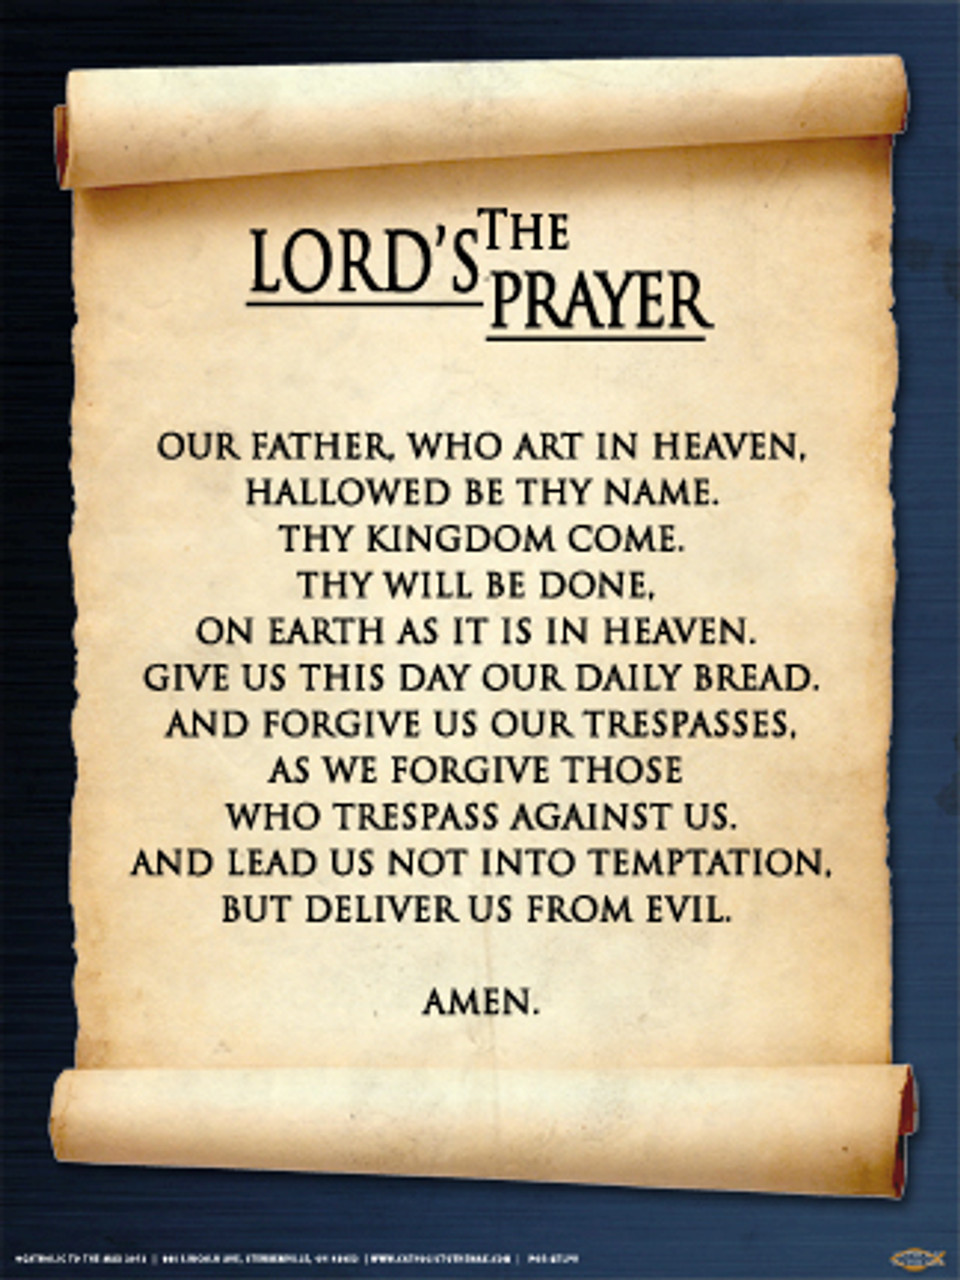 image about Printable Copy of the Lord's Prayer named The Lords Prayer Poster